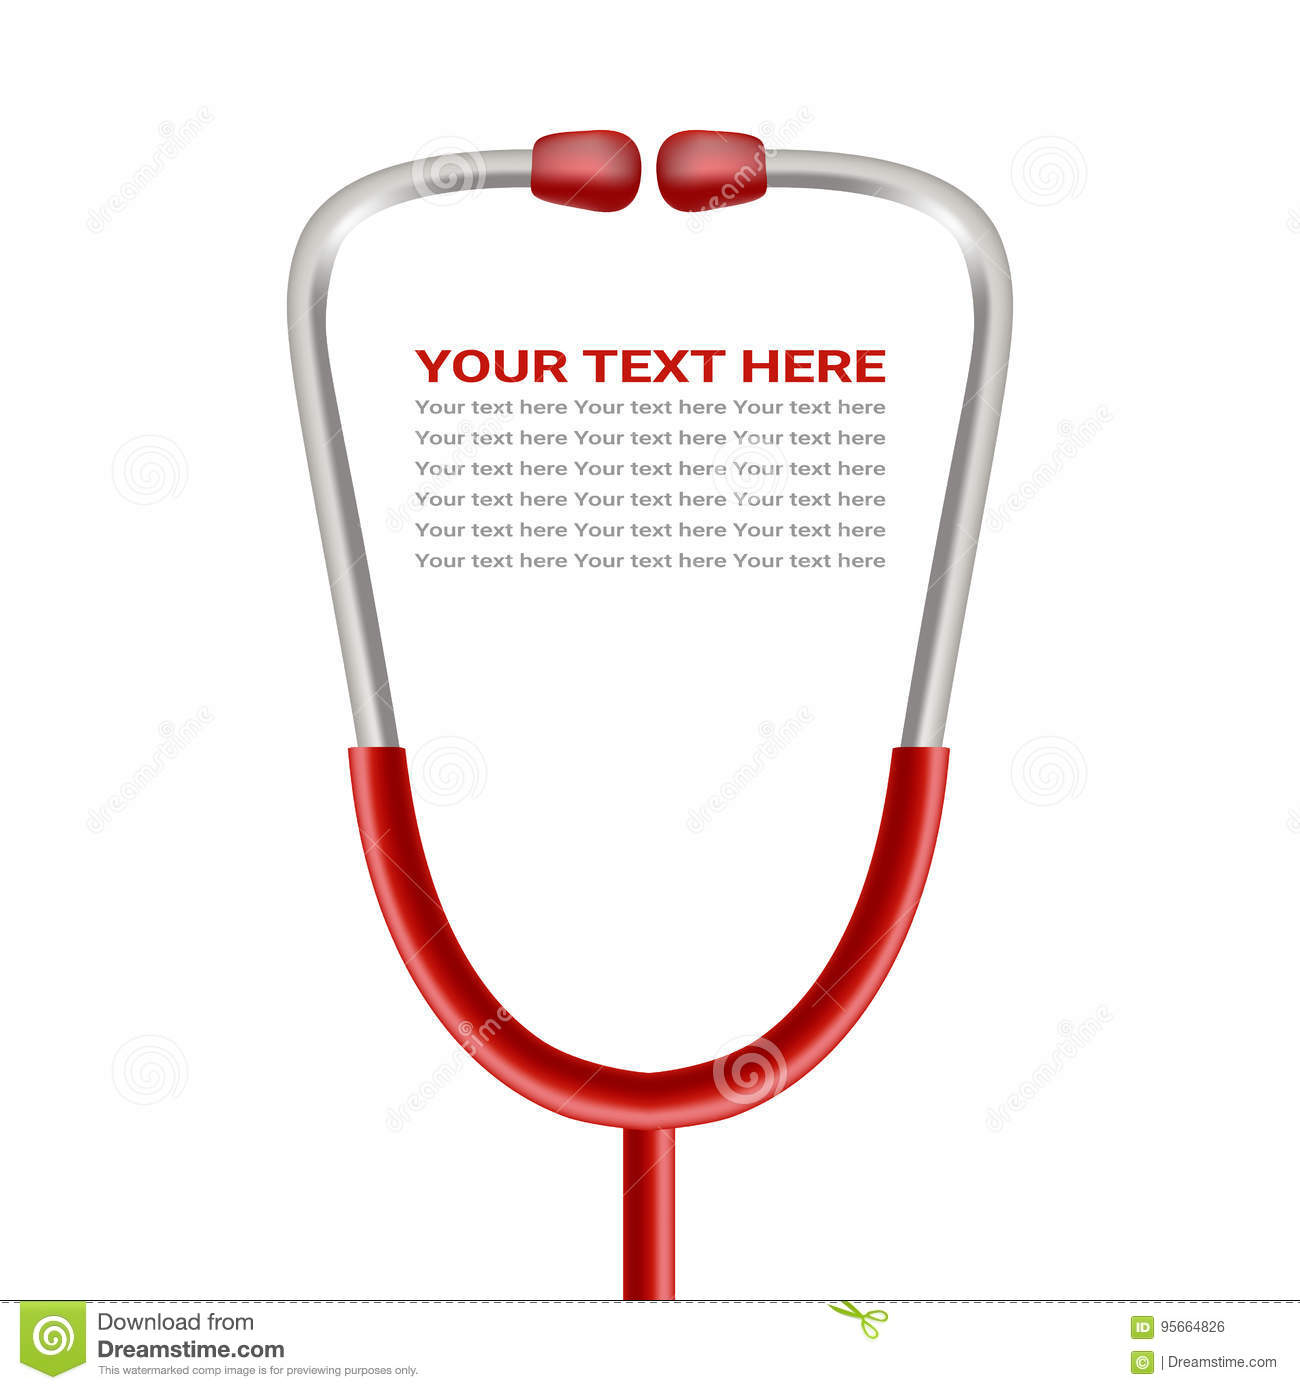 Red Phonendoscope, Stethoscope Isolated On A White Background. Realistic Vector Illustration.